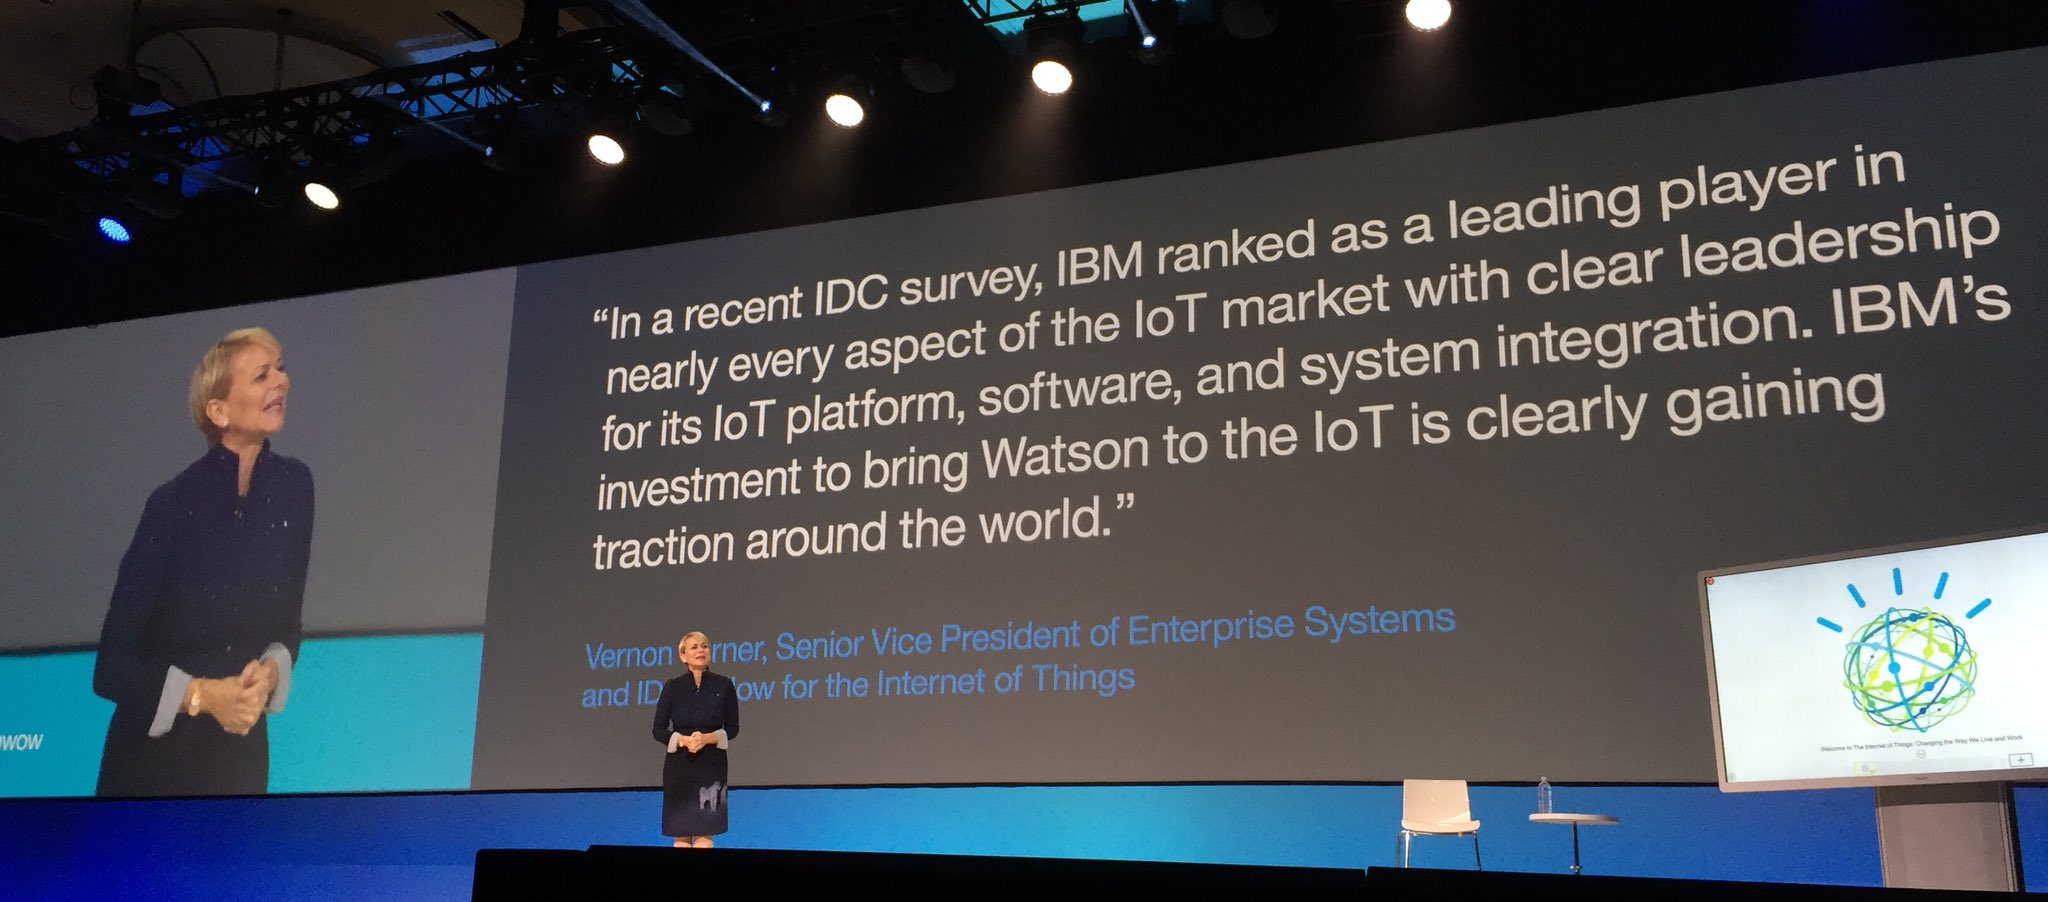 Serious kudos to the whole #WatsonIoT team #proud https://t.co/uFUUULEjqA